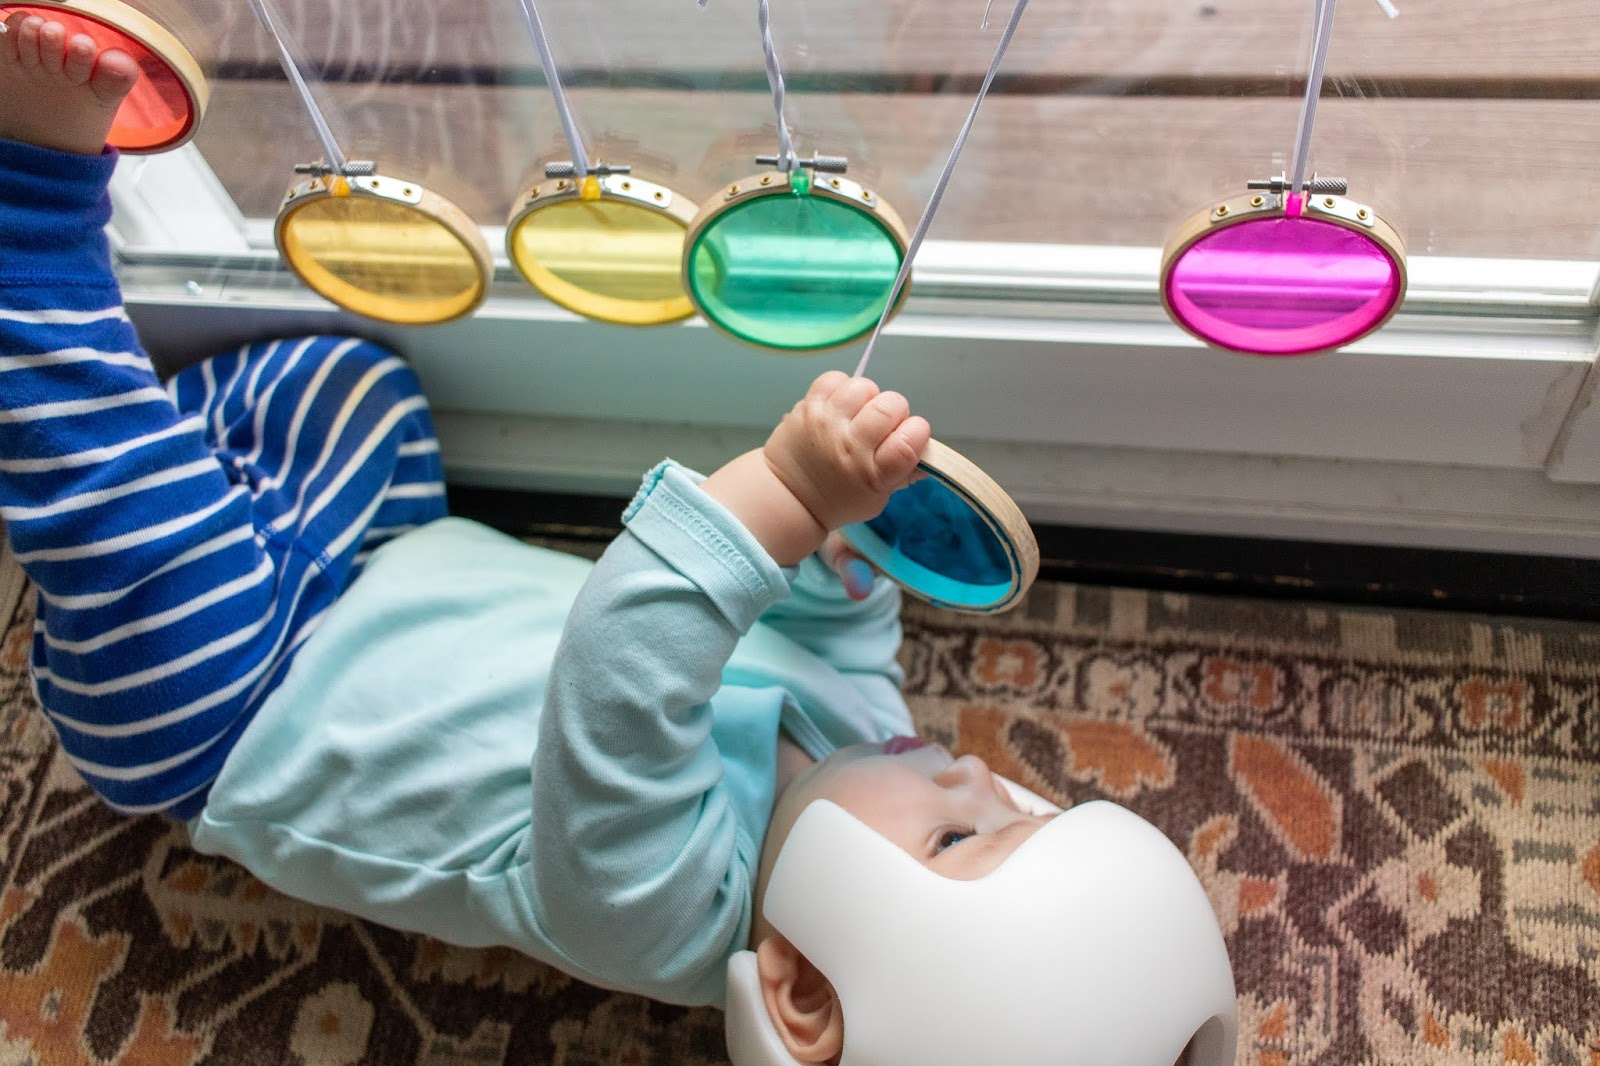 Baby development happens best through sensory rich play and exploration. Here's an easy, baby activity to help your baby explore color.